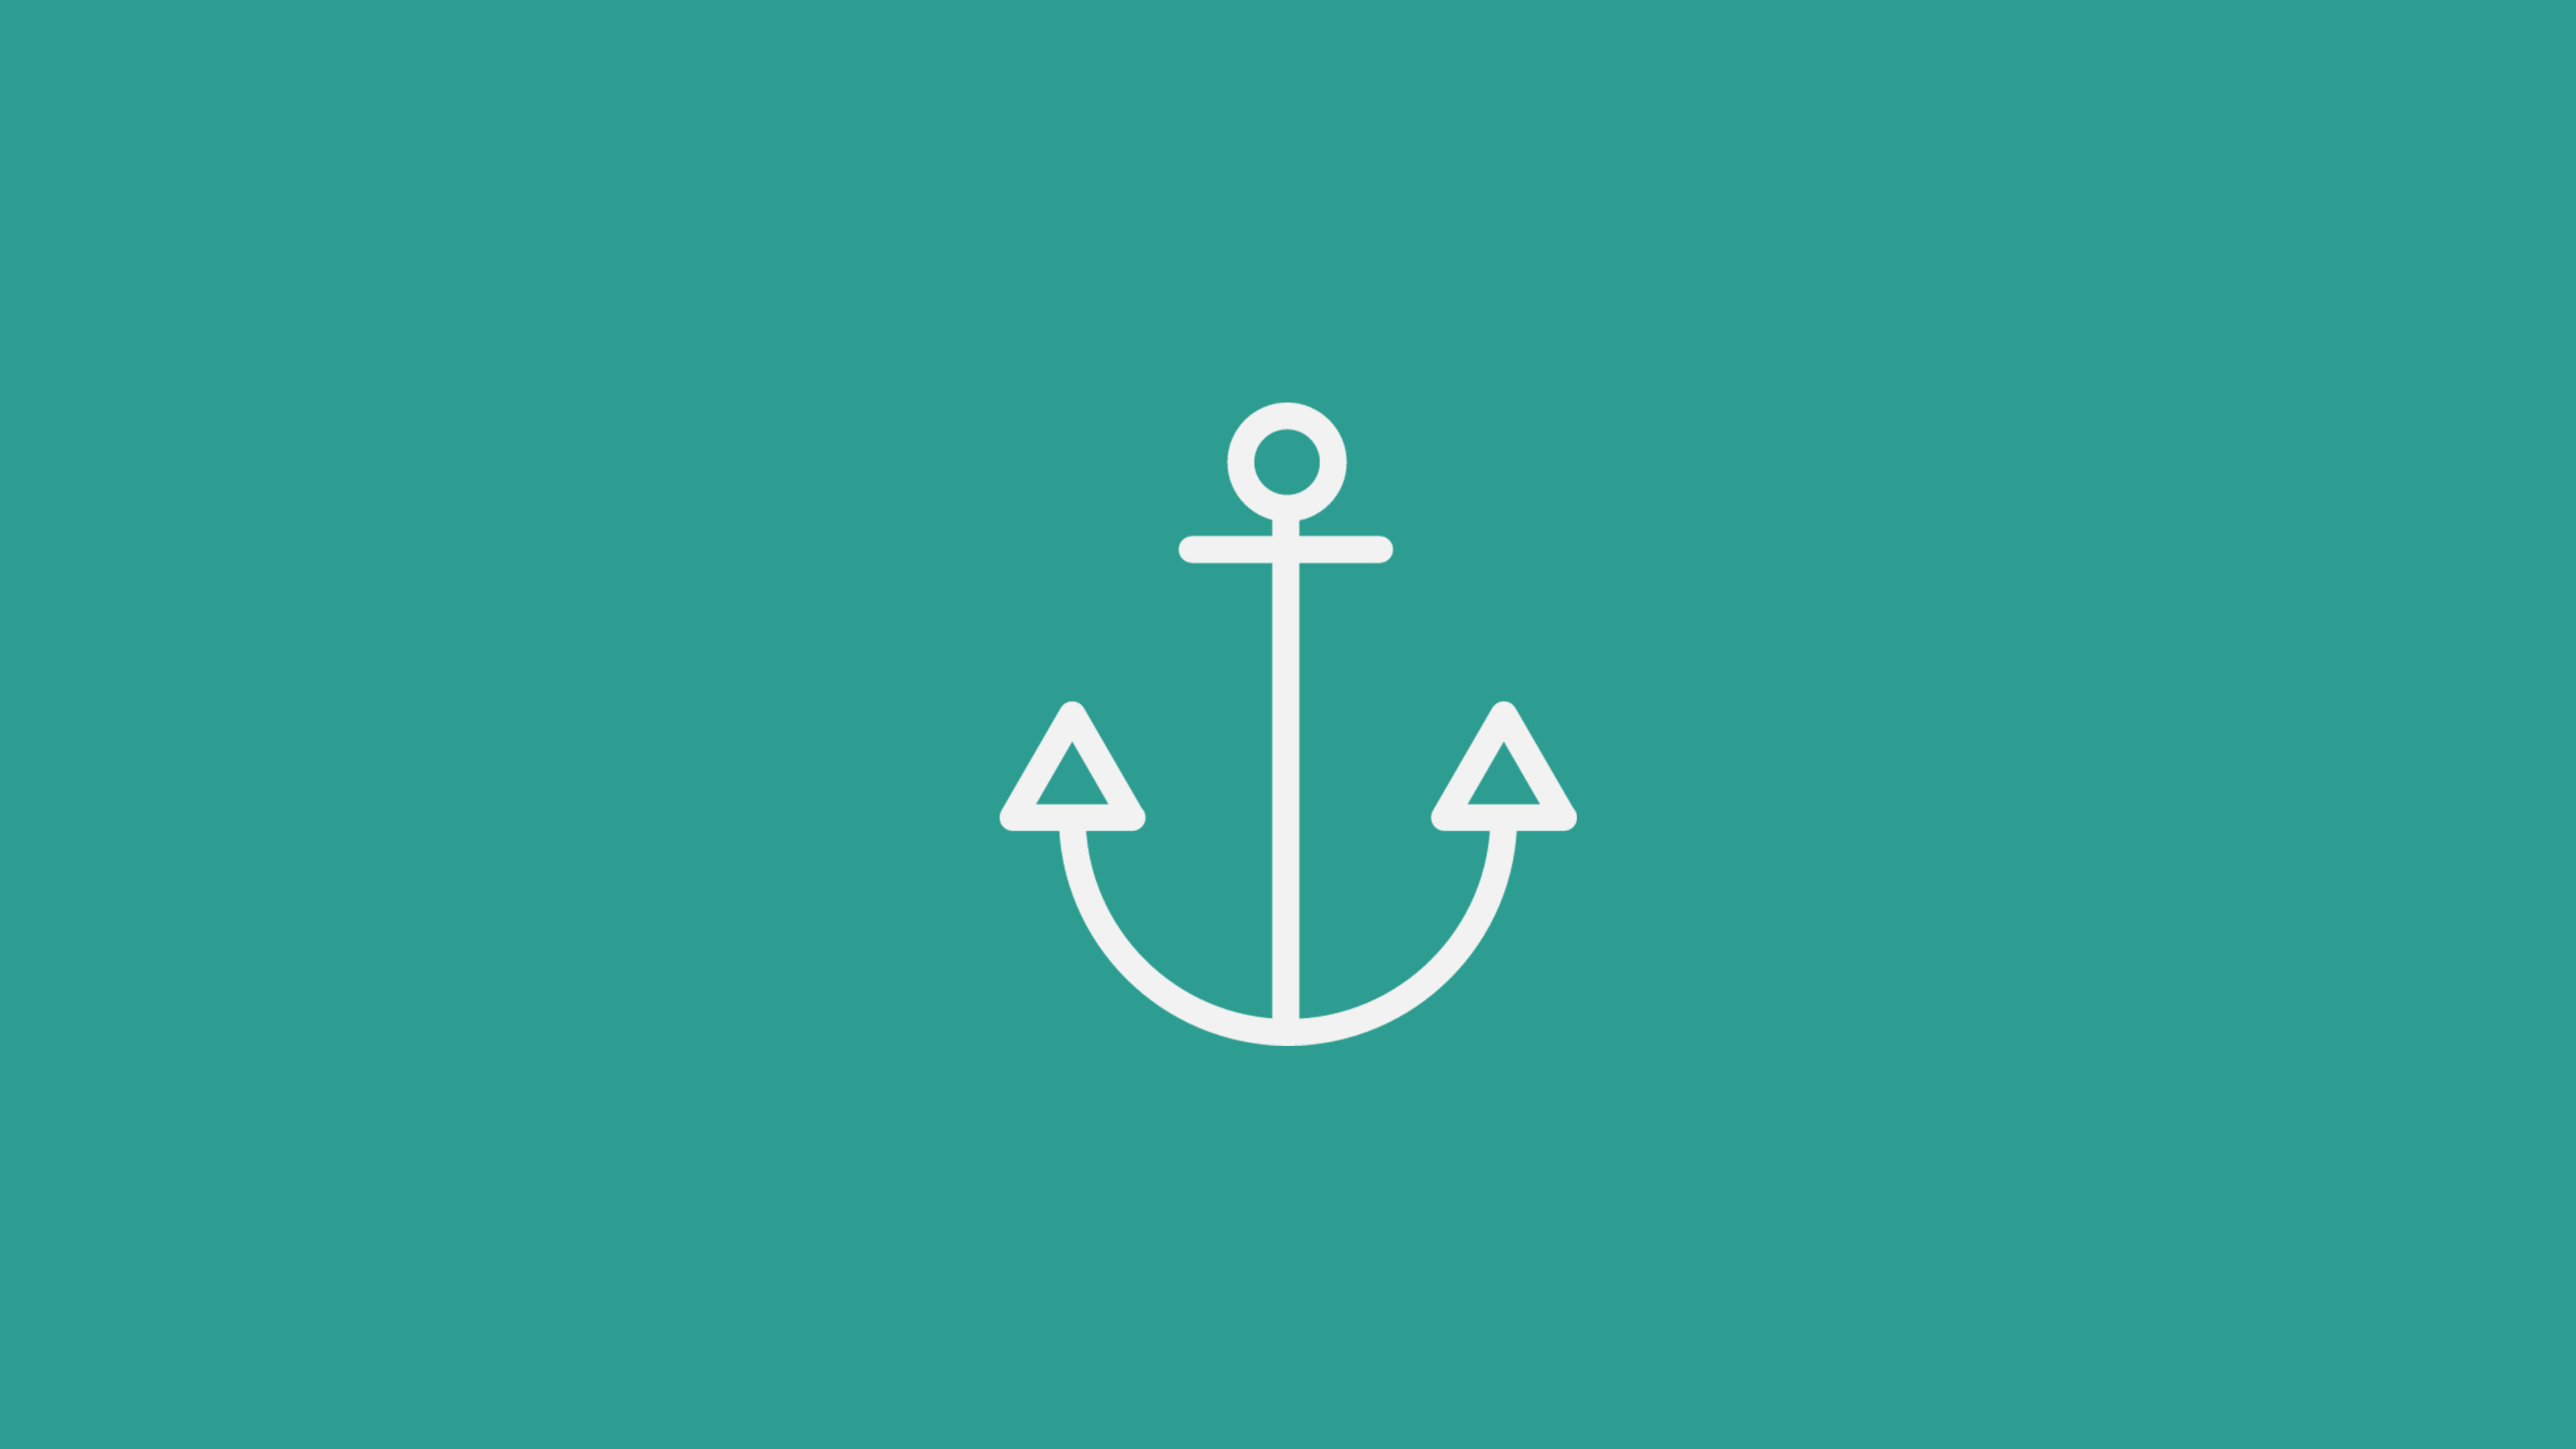 3840x2160 10 2017 Posted In Design Minimalistic Tagged Anchor Desktop Wallpaper